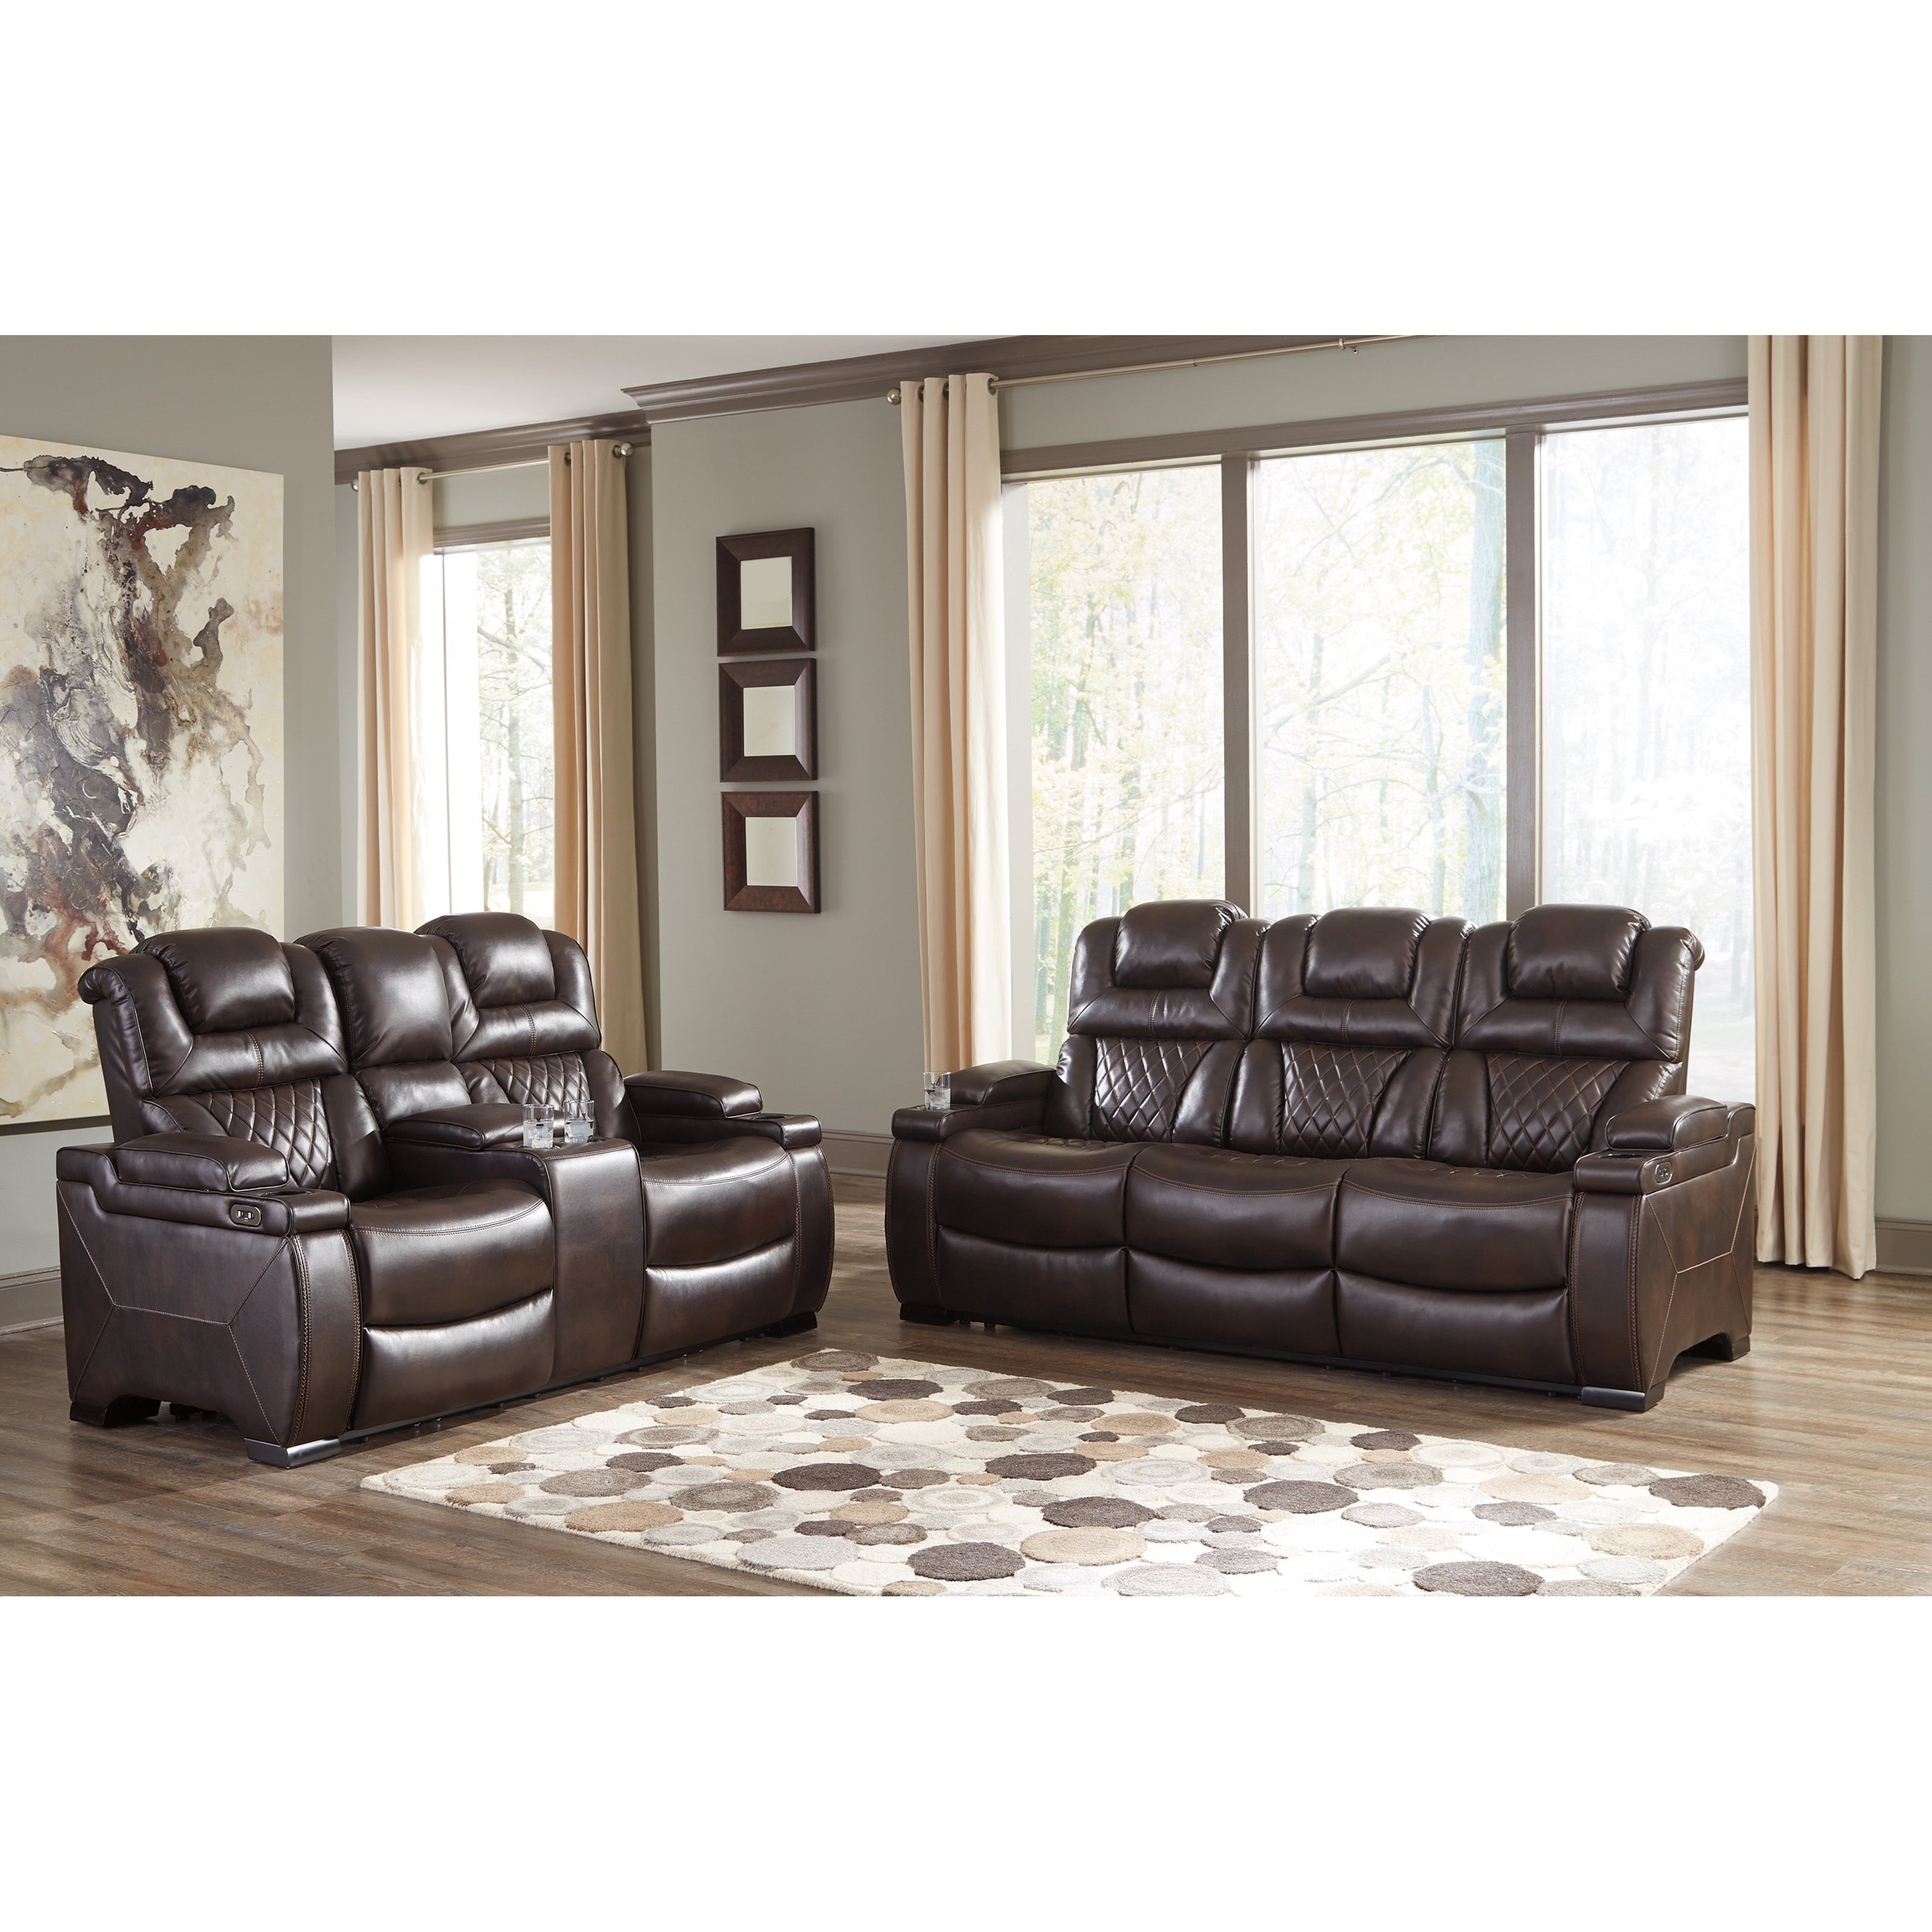 Furniture By Ashley: Signature Design By Ashley Warnerton Reclining Living Room